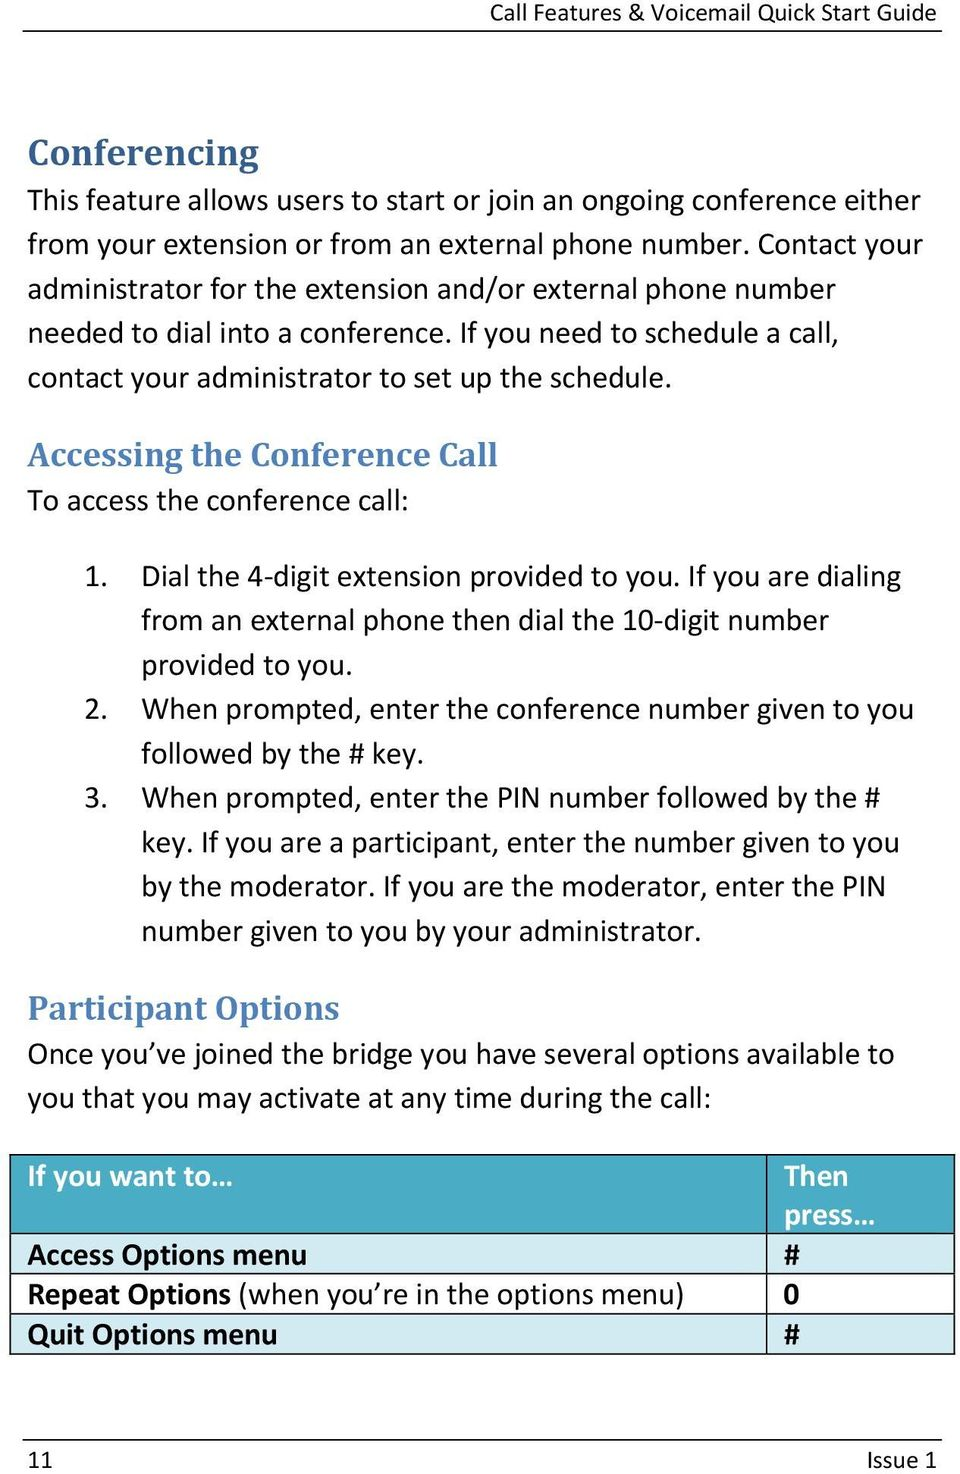 Accessing the Conference Call To access the conference call: 1. Dial the 4 digit extension provided to you. If you are dialing from an external phone then dial the 10 digit number provided to you. 2.